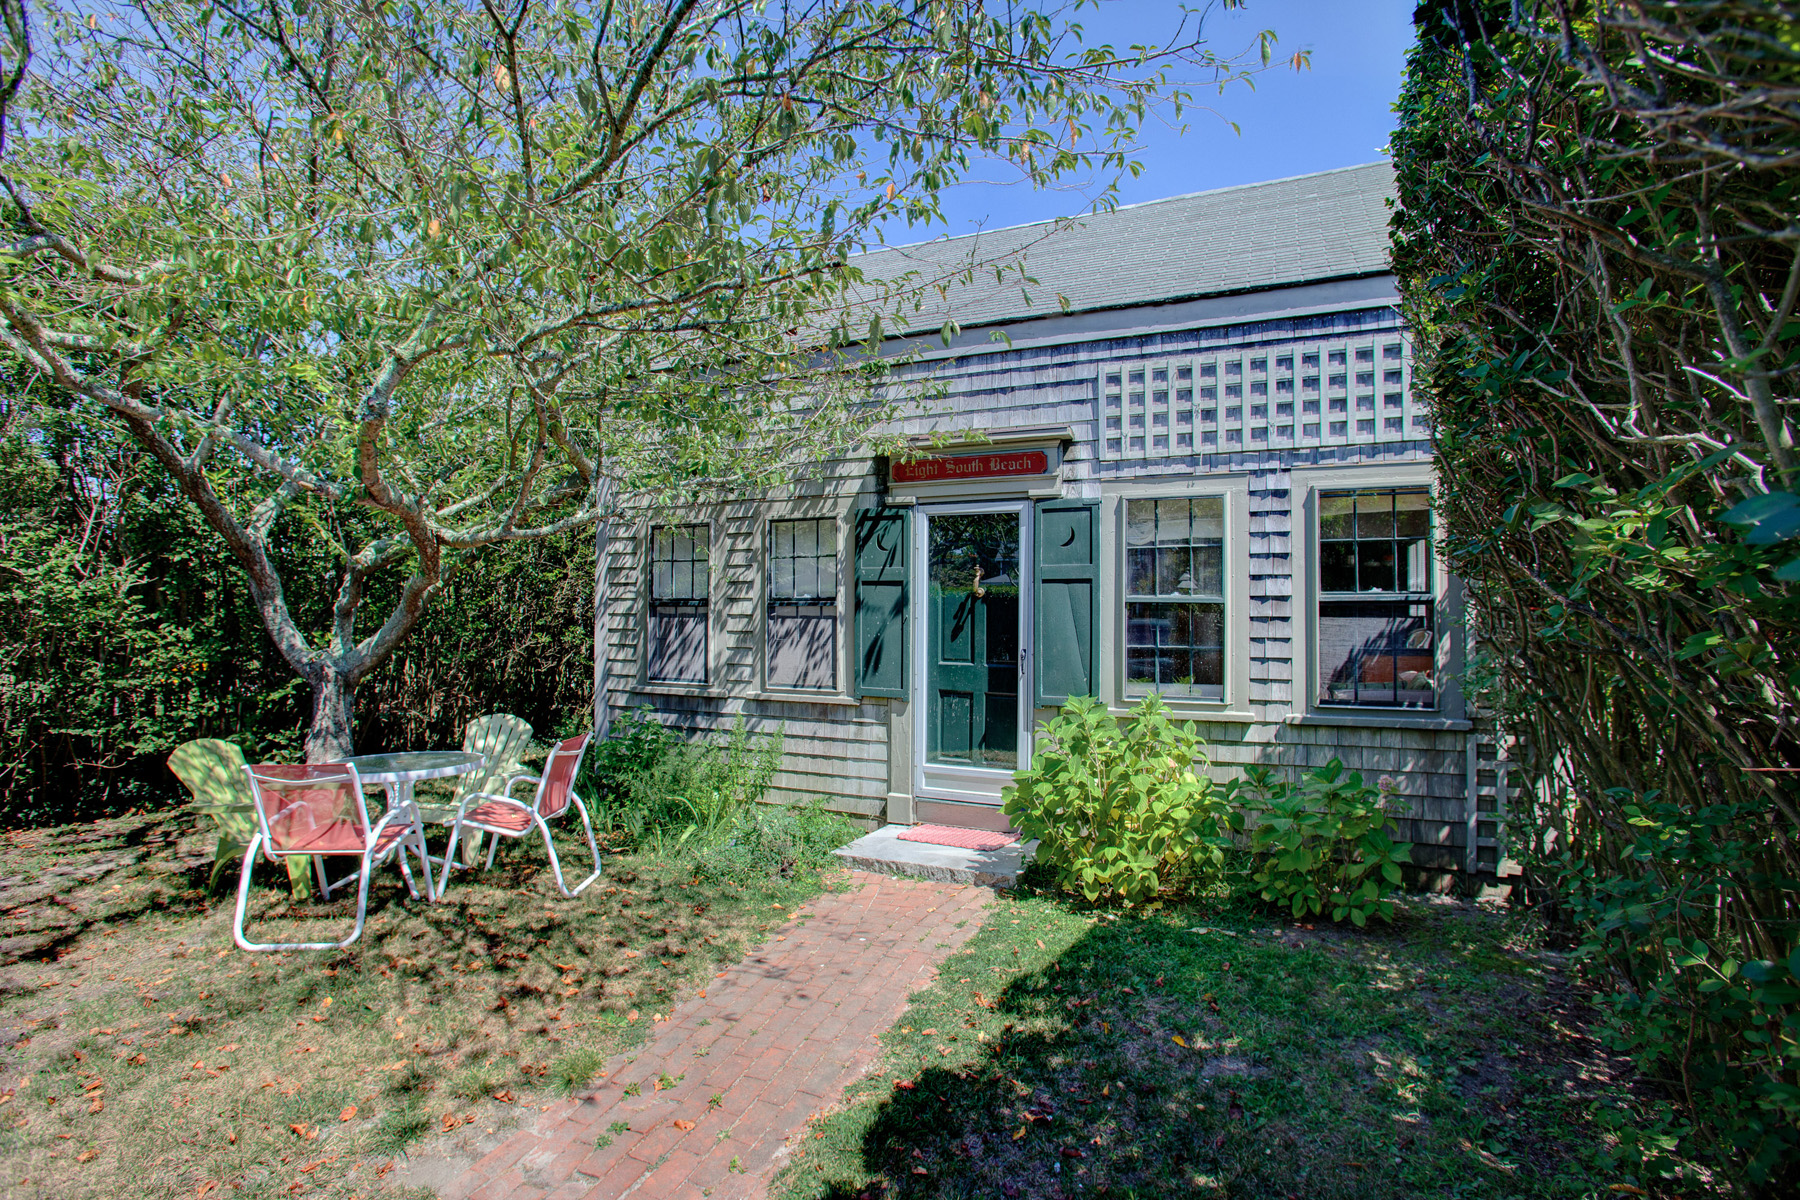 Single Family Home for Sale at Brant Point Close to Everything 8 South Beach Street Nantucket, Massachusetts, 02554 United States